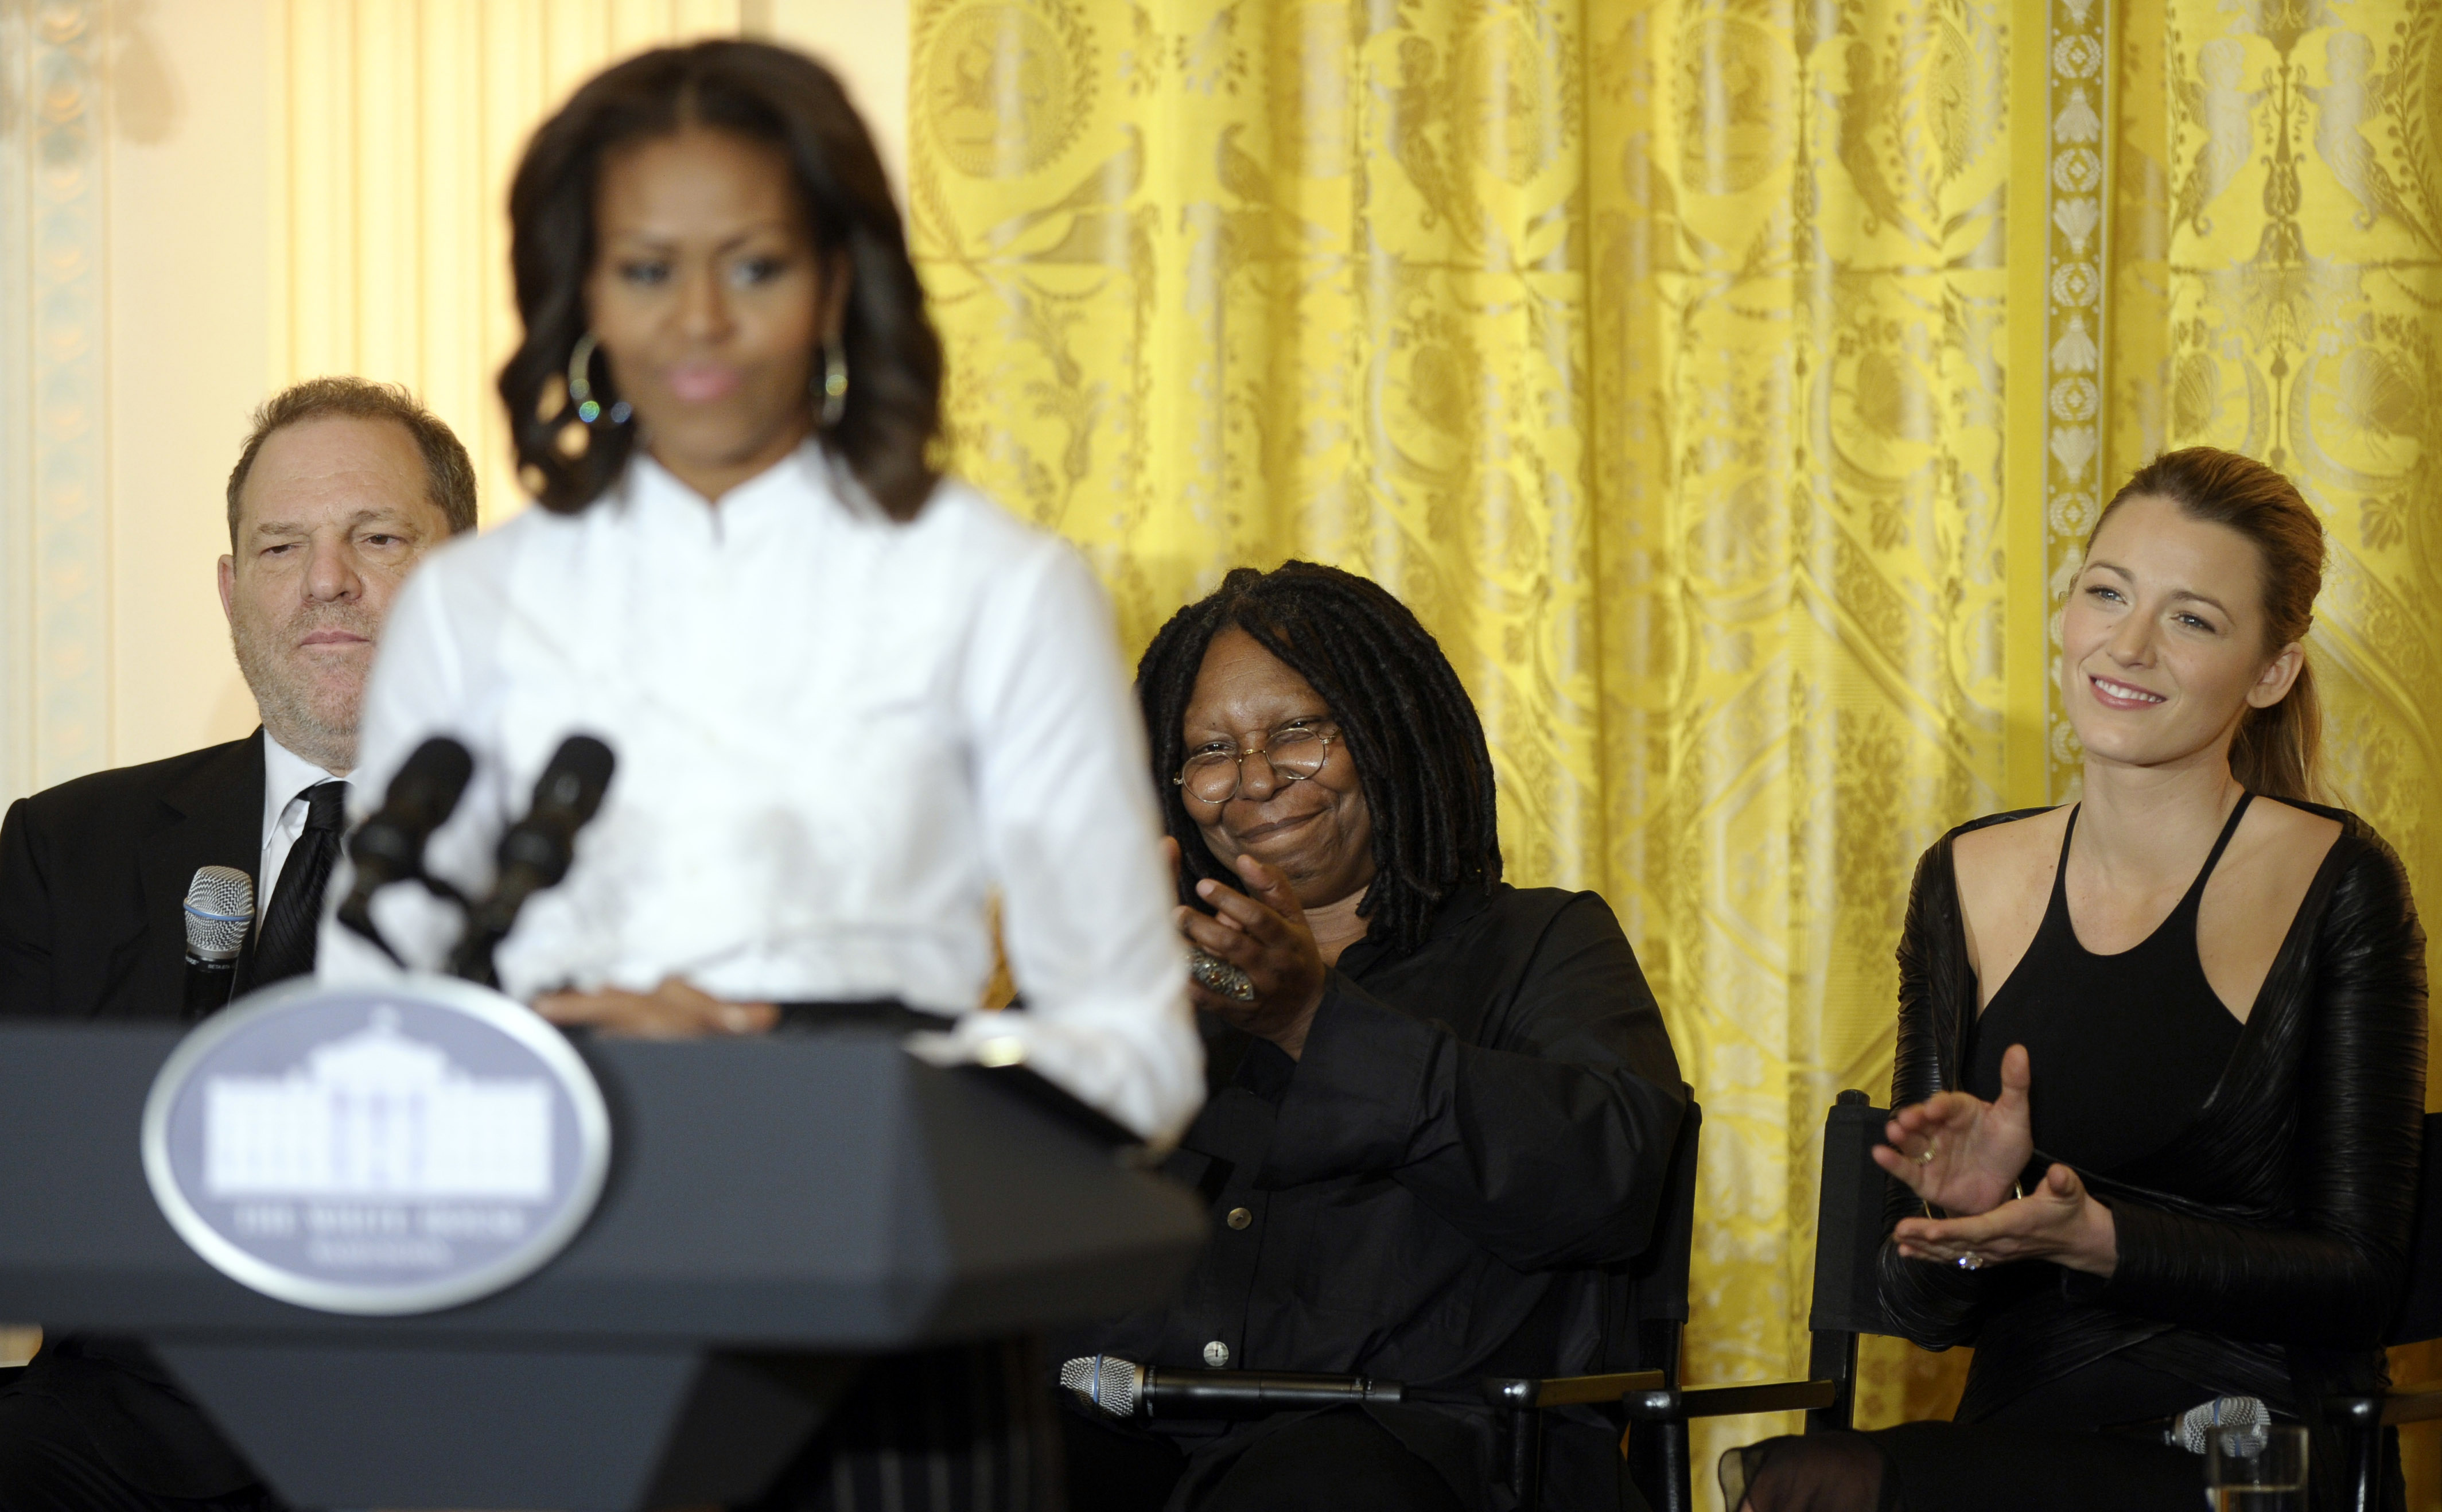 FILE - In this Nov. 8, 2013, file photo, movie mogul Harvey Weinstein, left, Oscar-winning actress Whoopie Goldberg, second from right, and actress Blake Lively, right, listen to then-first lady Michelle Obama as she speaks in the East Room of the White House in Washington, at a workshop for high school students about careers in film. Congressional Democrats are starting to give charities thousands of dollars that Weinstein contributed to them over the years. The nonpartisan Center for Responsive Politics says Weinstein has donated more than $1.4 million since the 1992 election cycle. Nearly all has gone to Democrats and their allies.  (AP Photo/Susan Walsh, File)